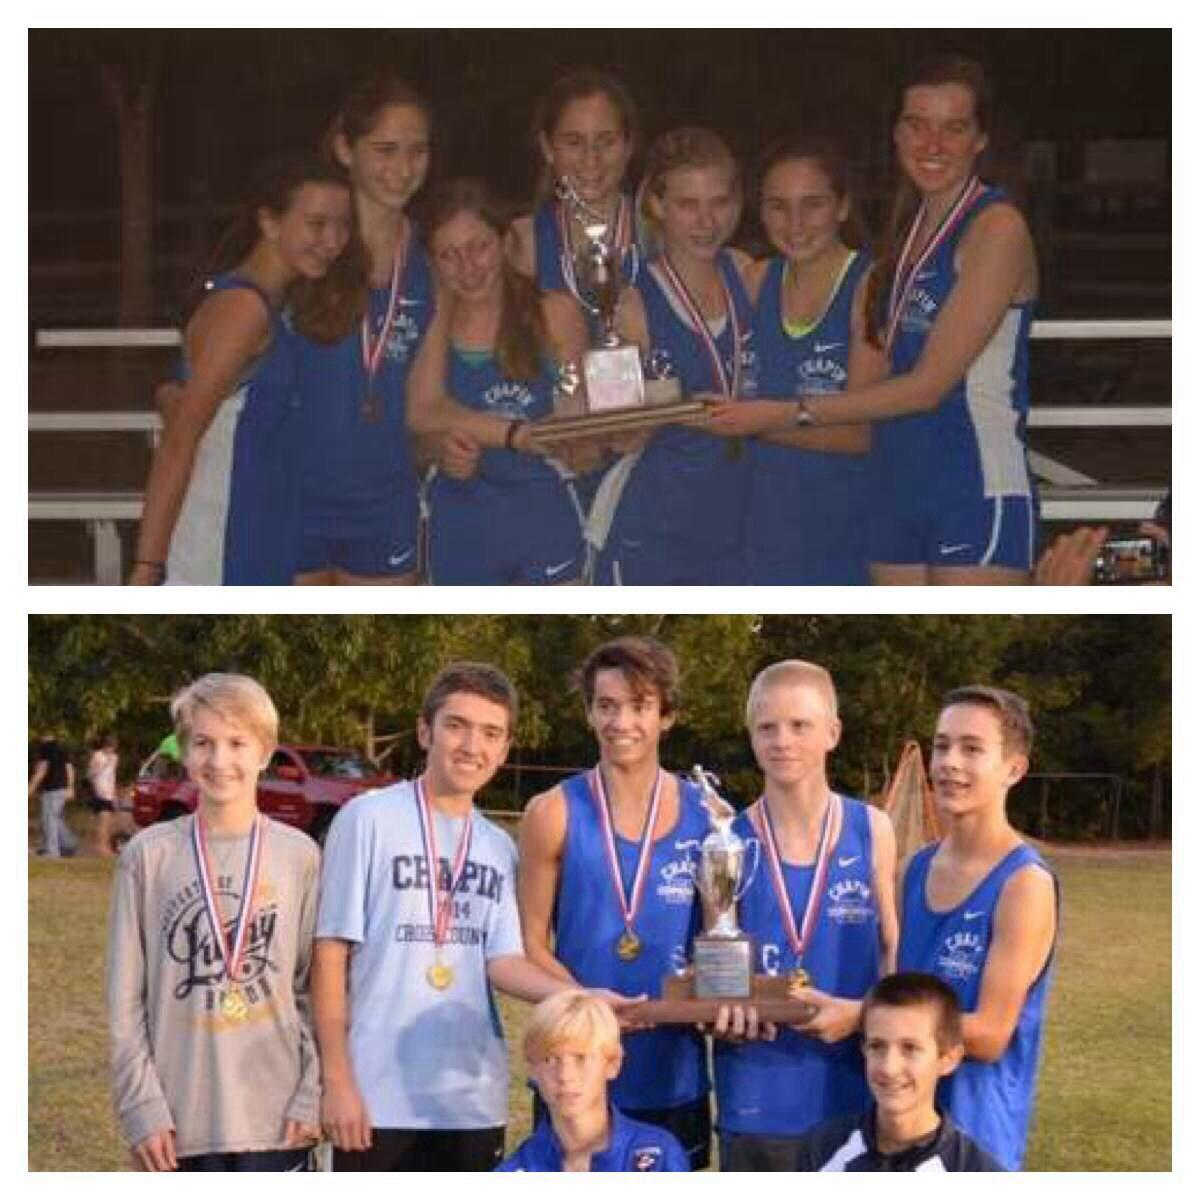 Both boys and girls Cross-Country teams win their region.